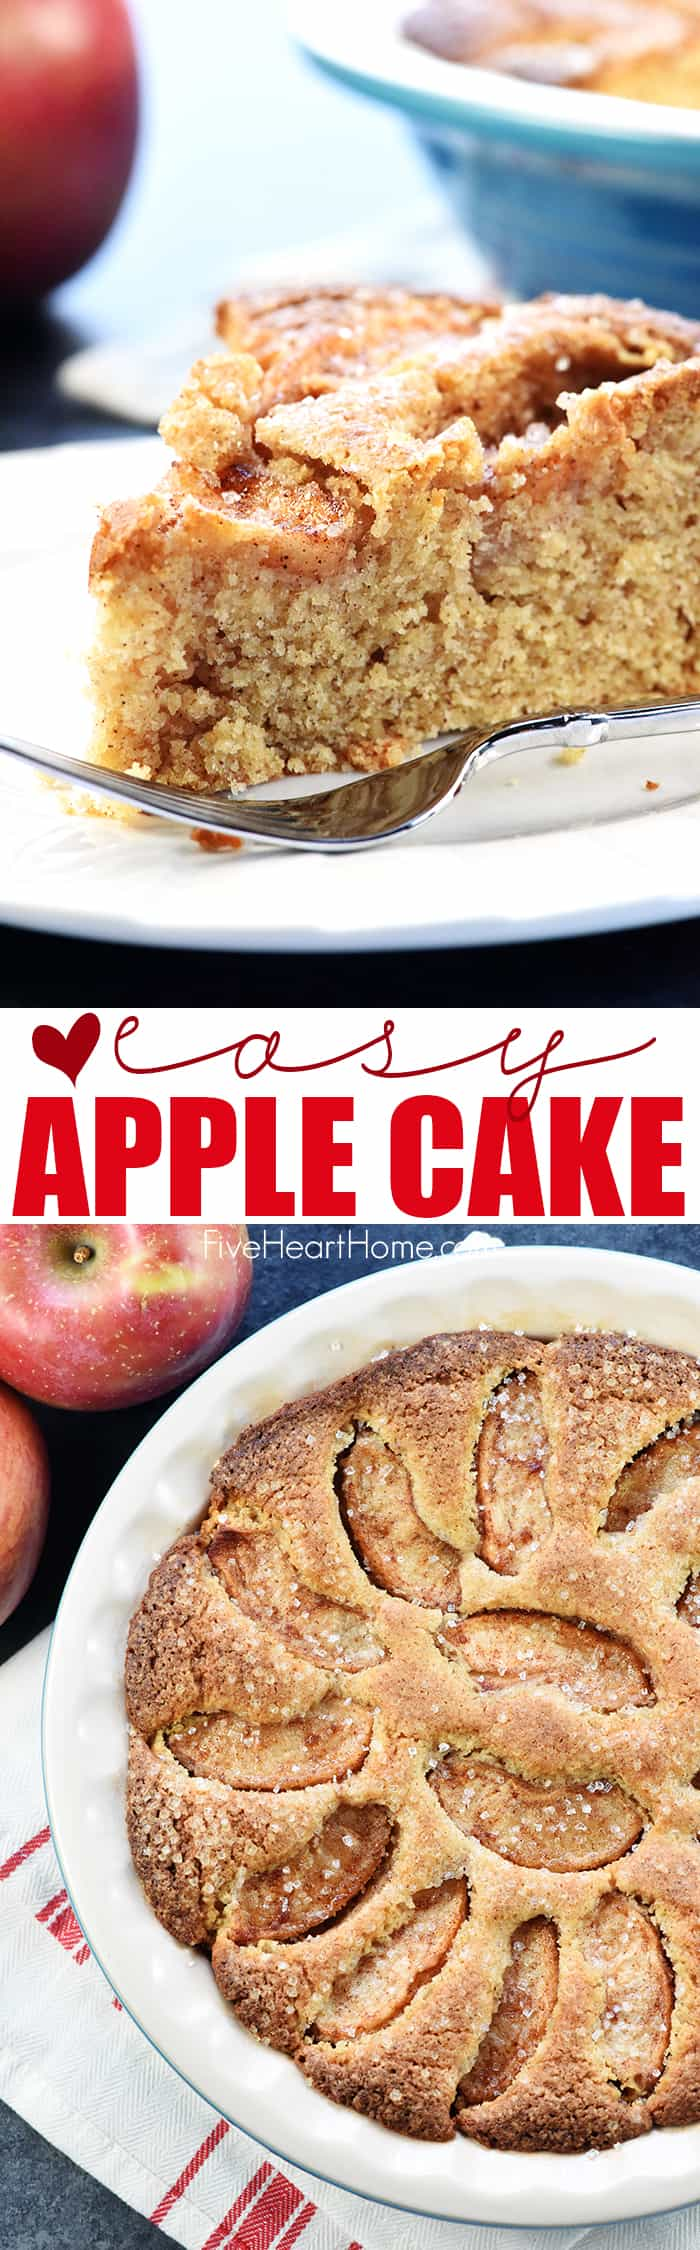 Easy Apple Cake ~ a quick cinnamon-kissed batter and a crown of sliced apples add up to a sweet, simple dessert that's perfect for fall or any time of year! | FiveHeartHome.com